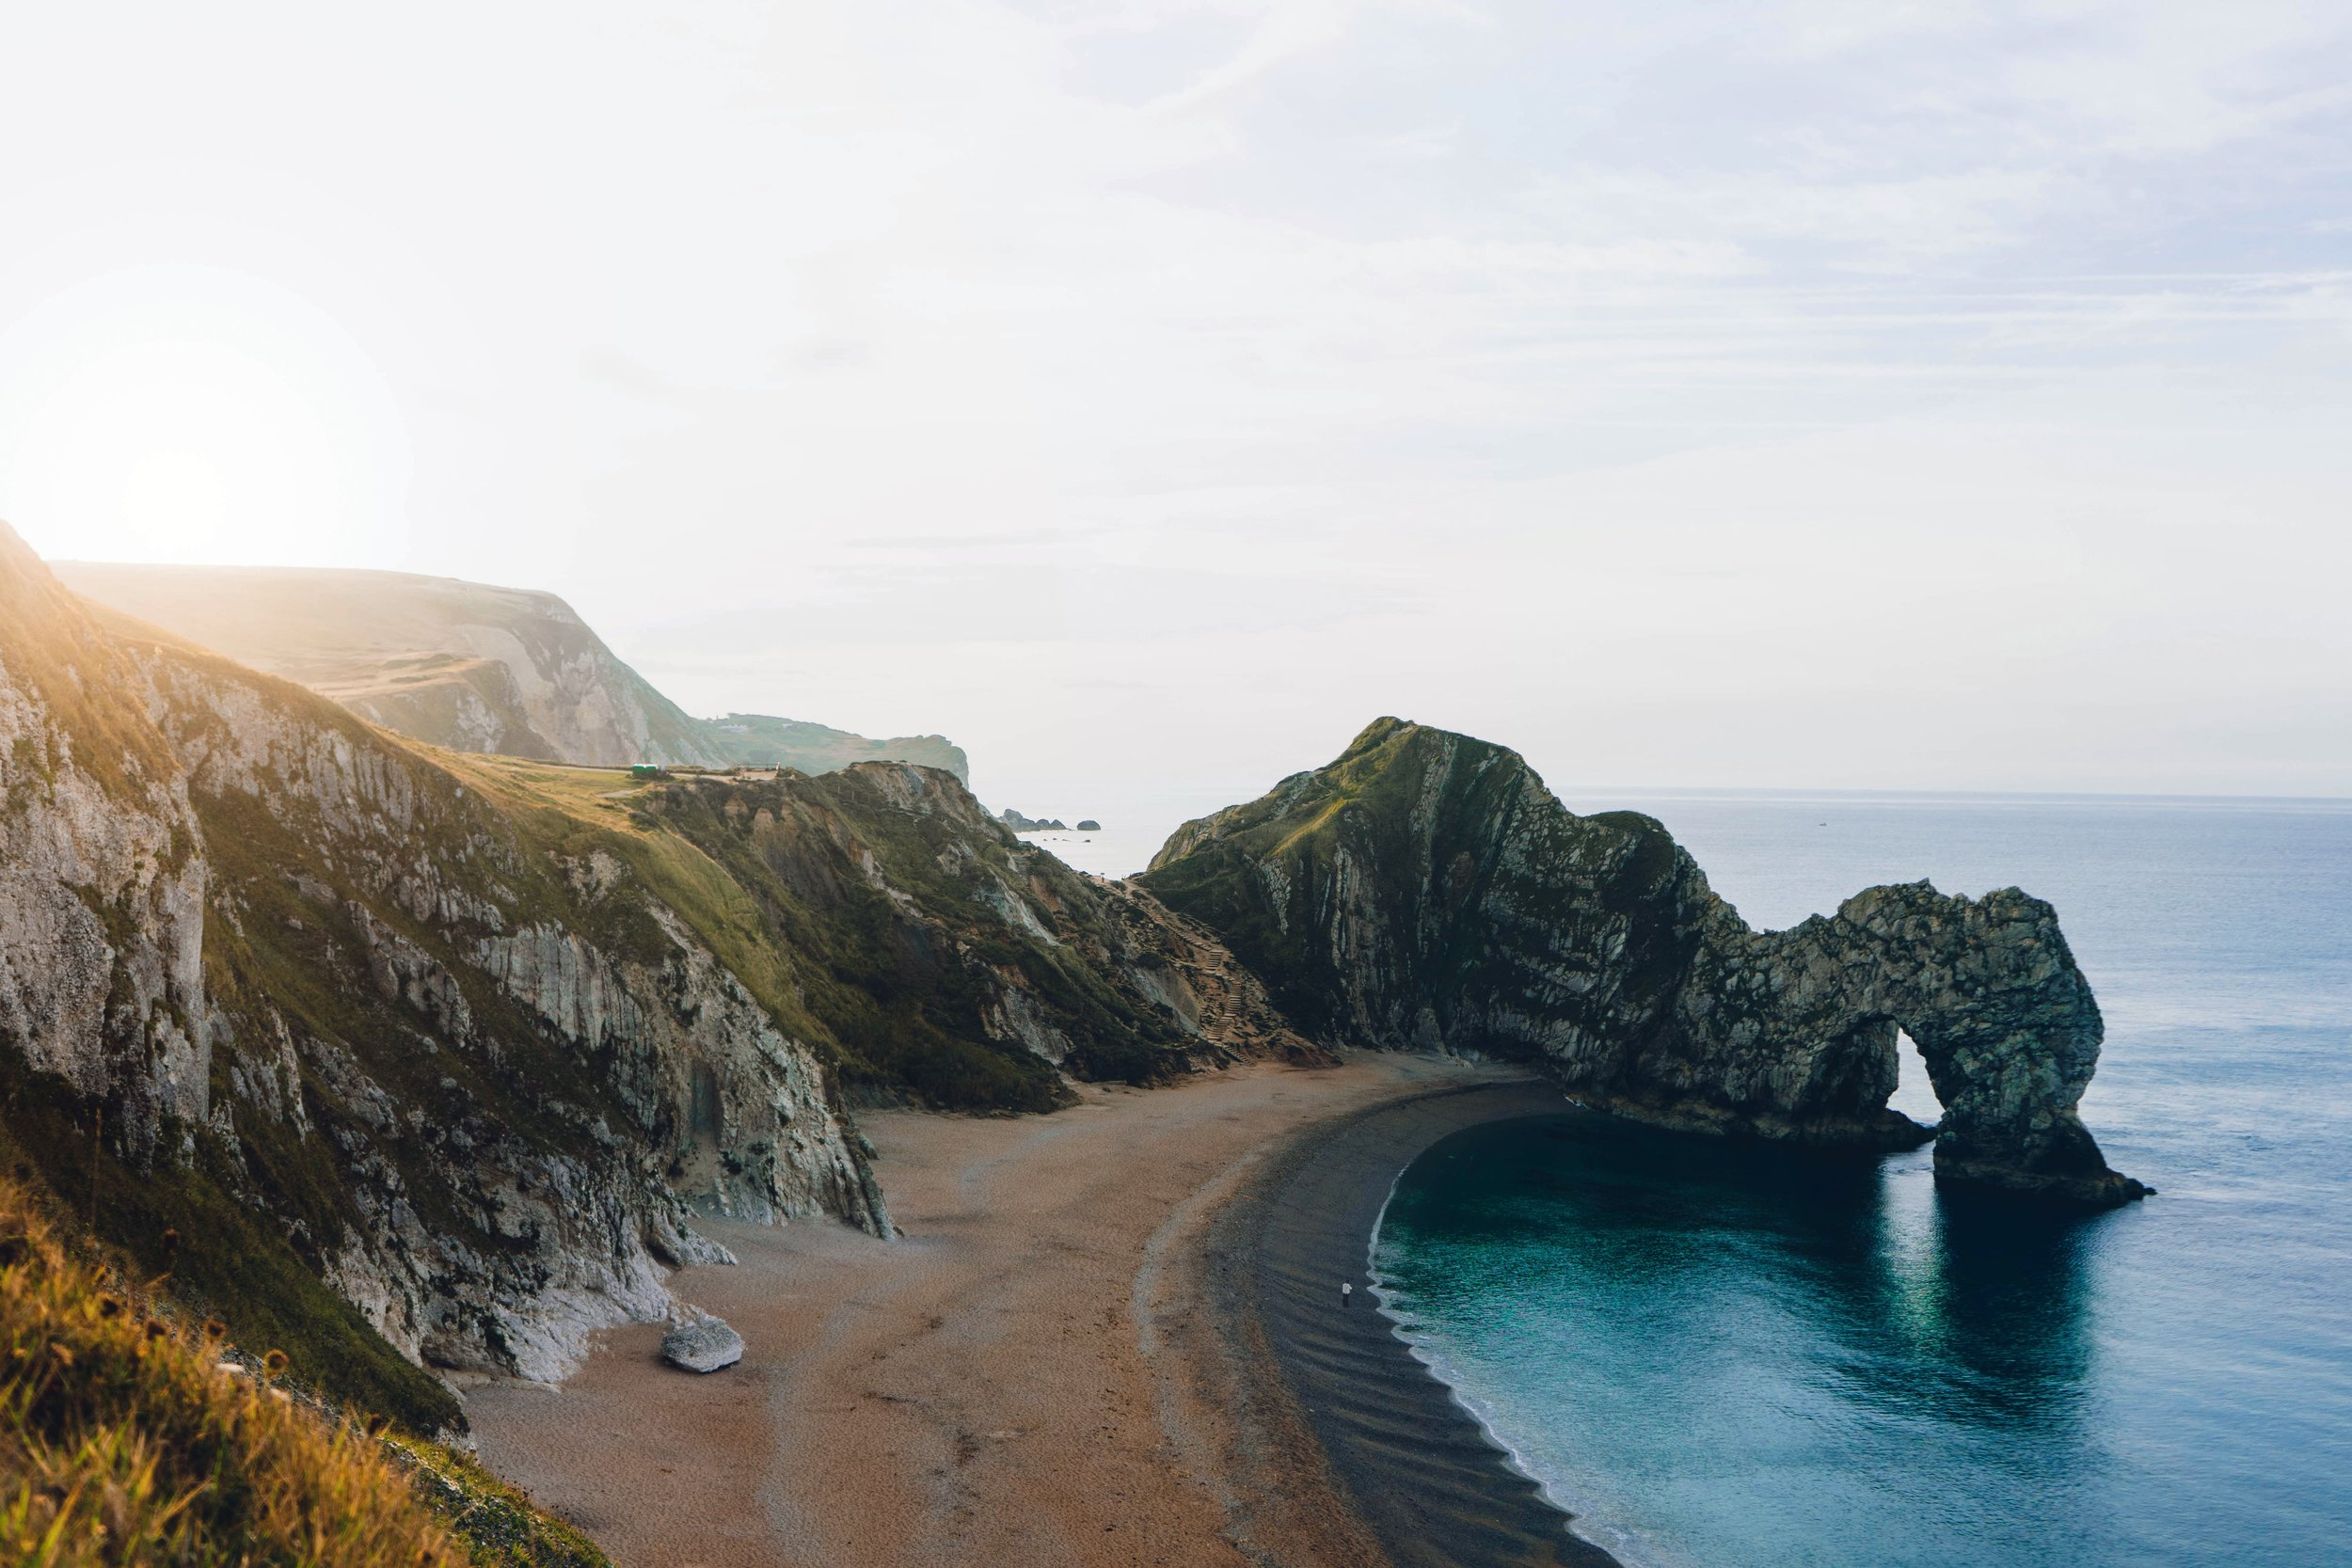 See the famous arch at Durdle Door by kayak